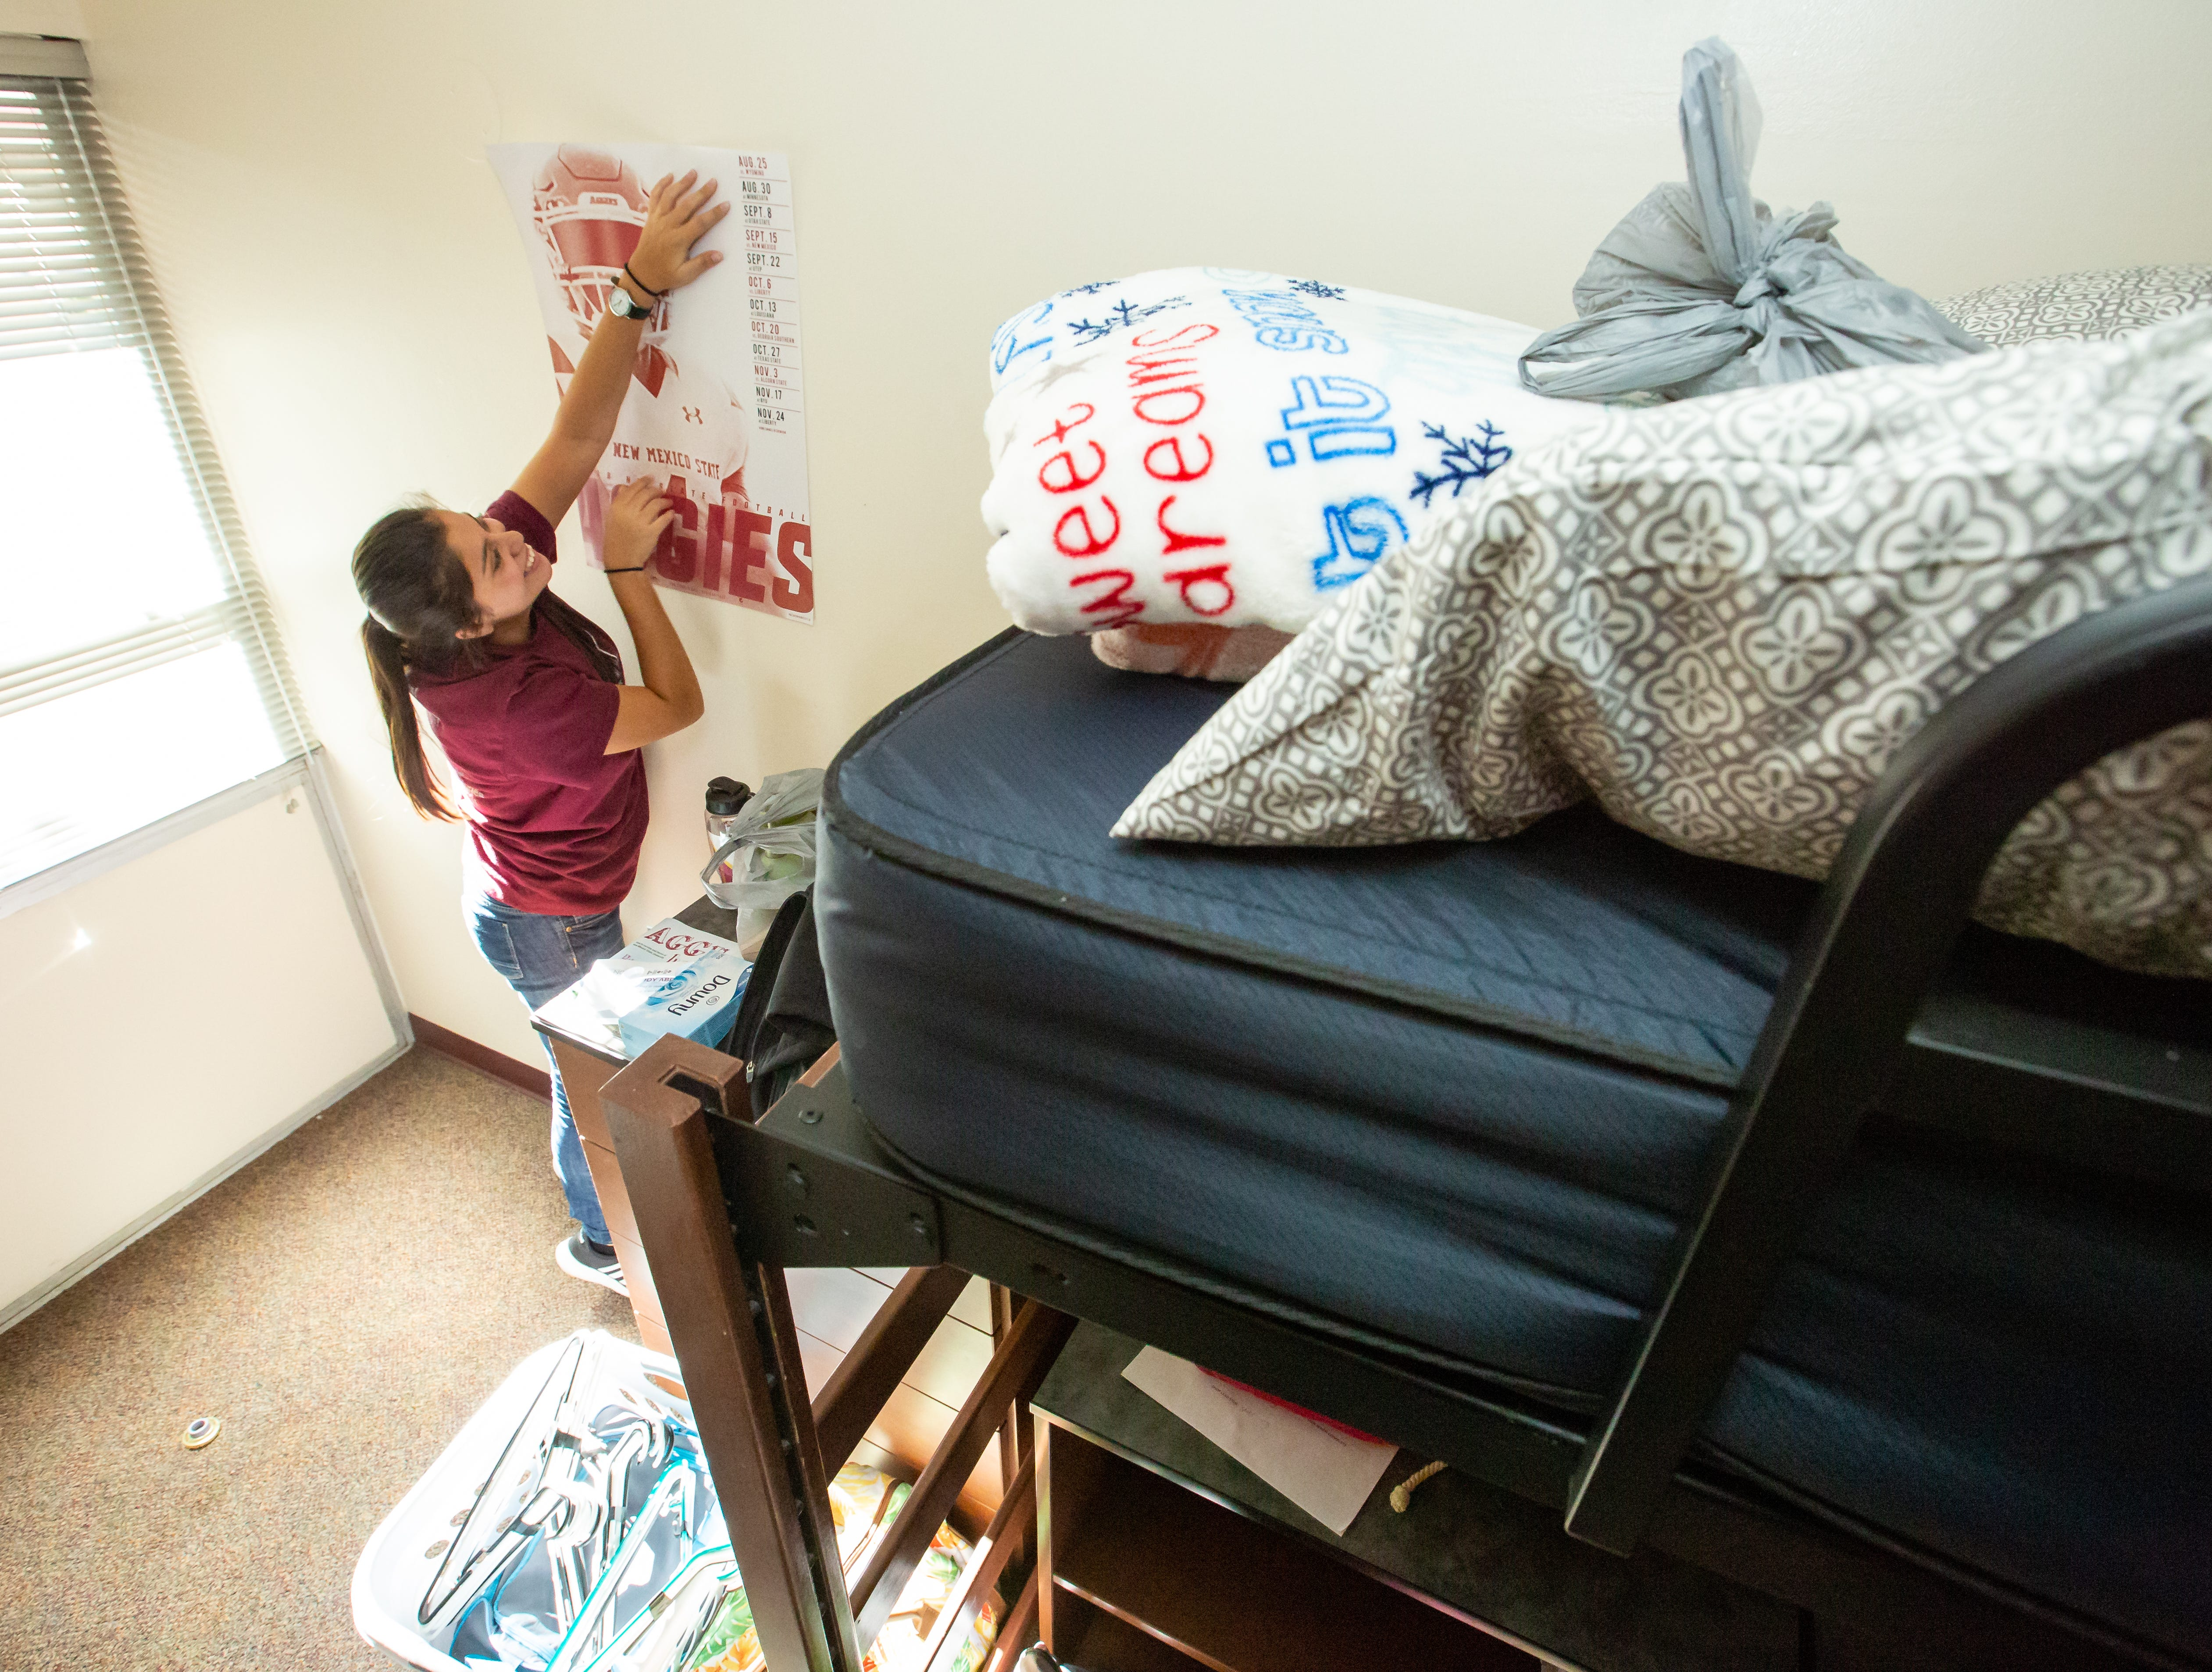 NMSU students move into dorms | Las Cruces Sun